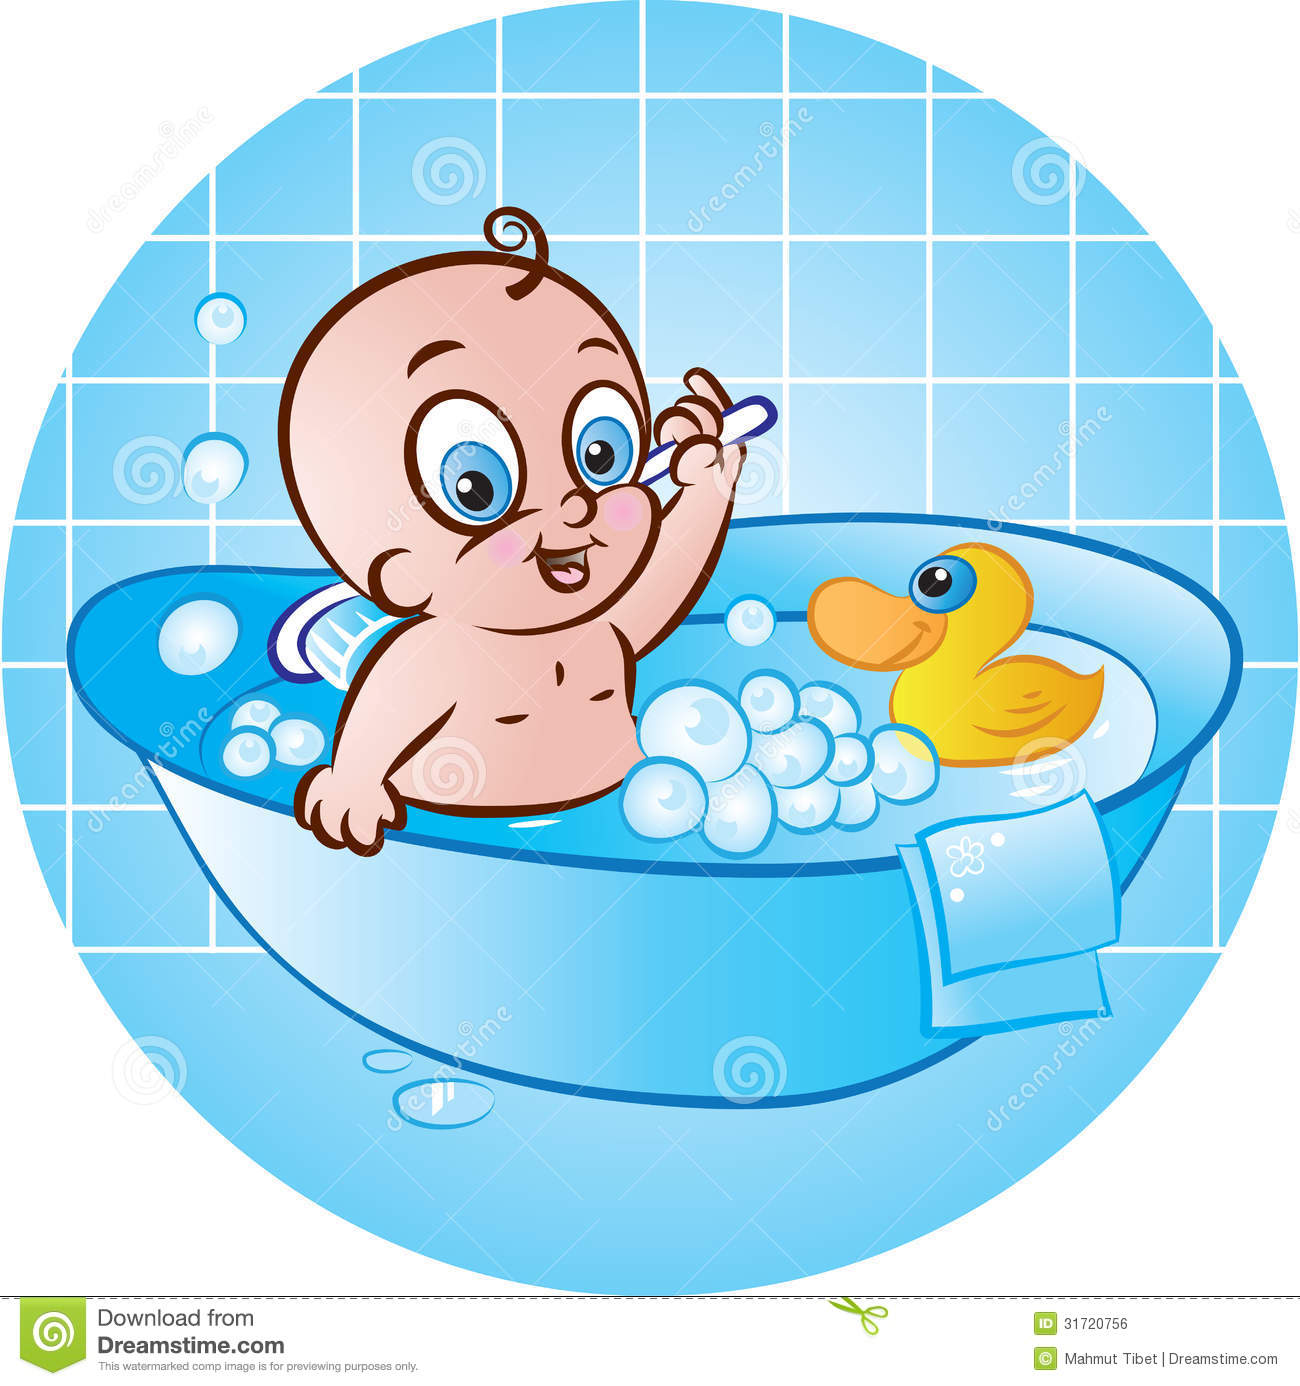 Happy baby boy in tub stock vector. Illustration of washing - 31720756